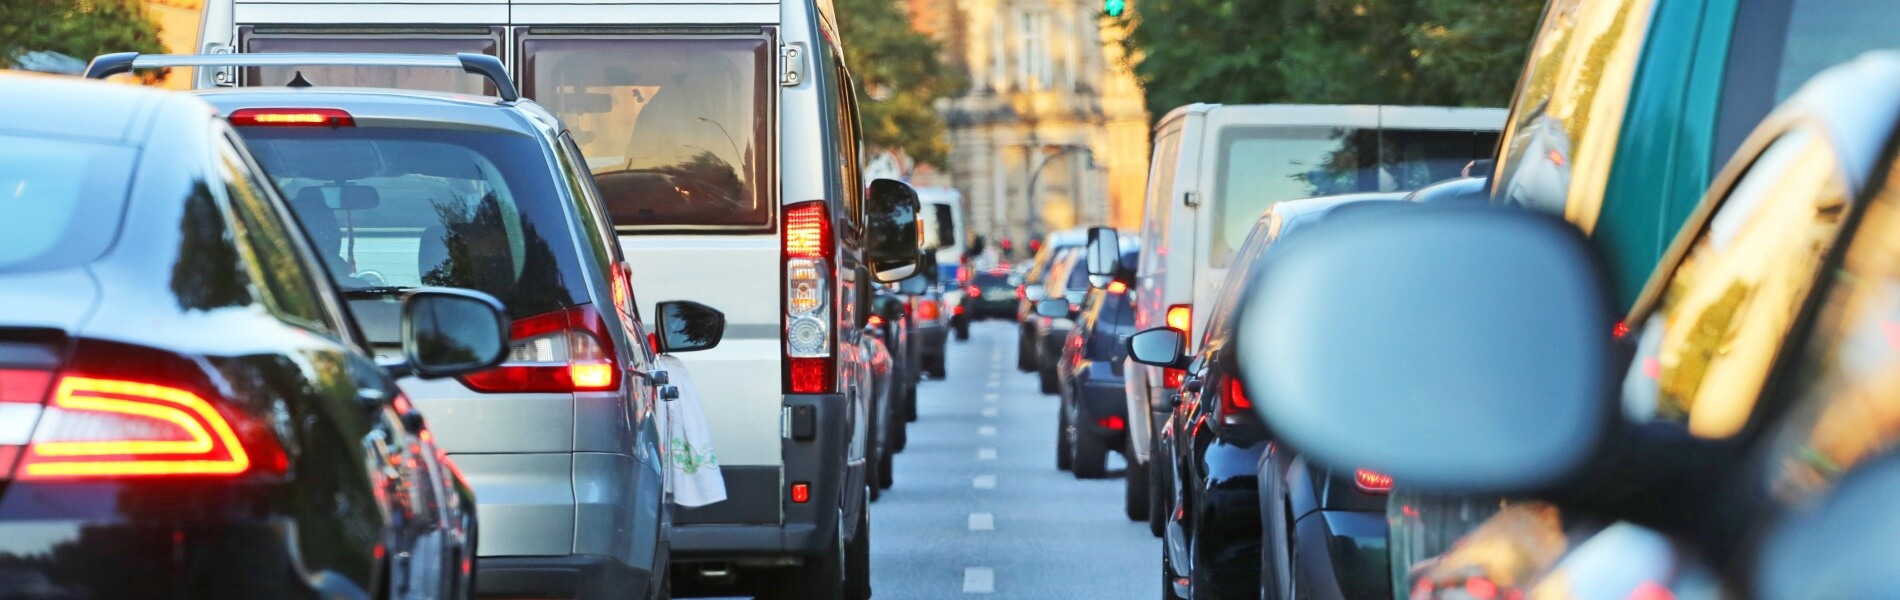 Our cities on the way to multimodal mobility – who is moving forward?